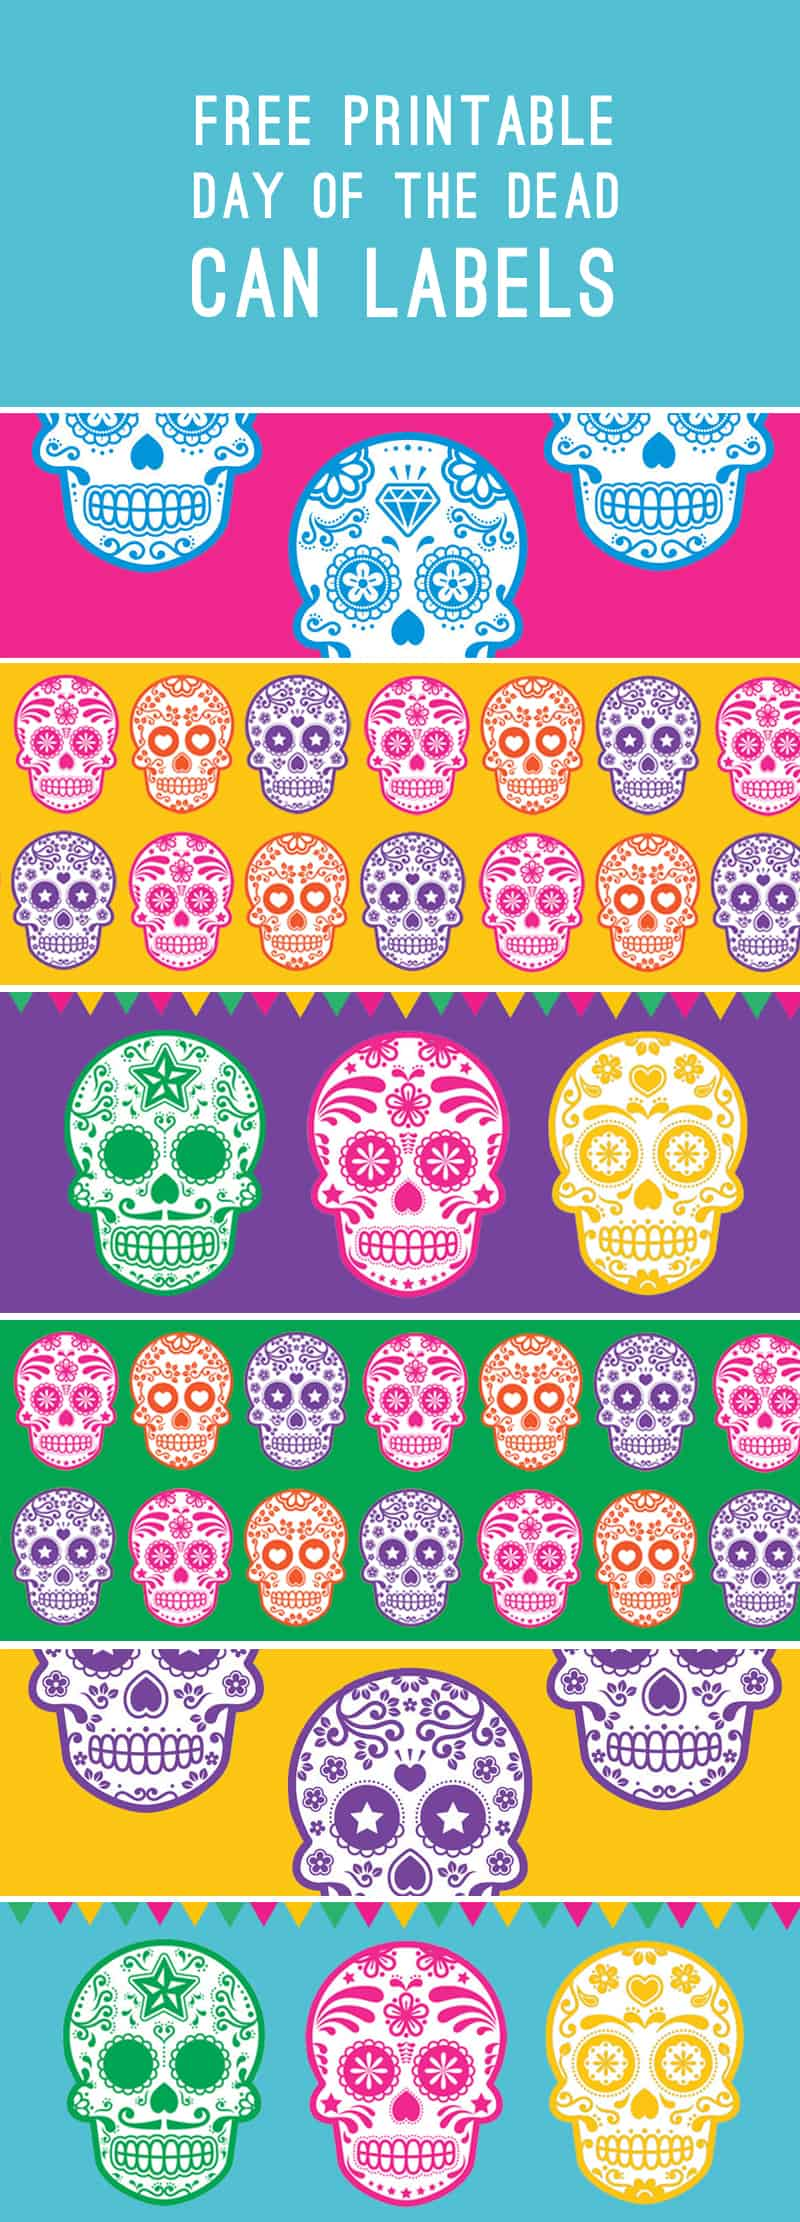 free-printable-day-of-the-dead-dia-de-los-muertos-decorations-can-labels-colourful-mexican-wedding-decor-9